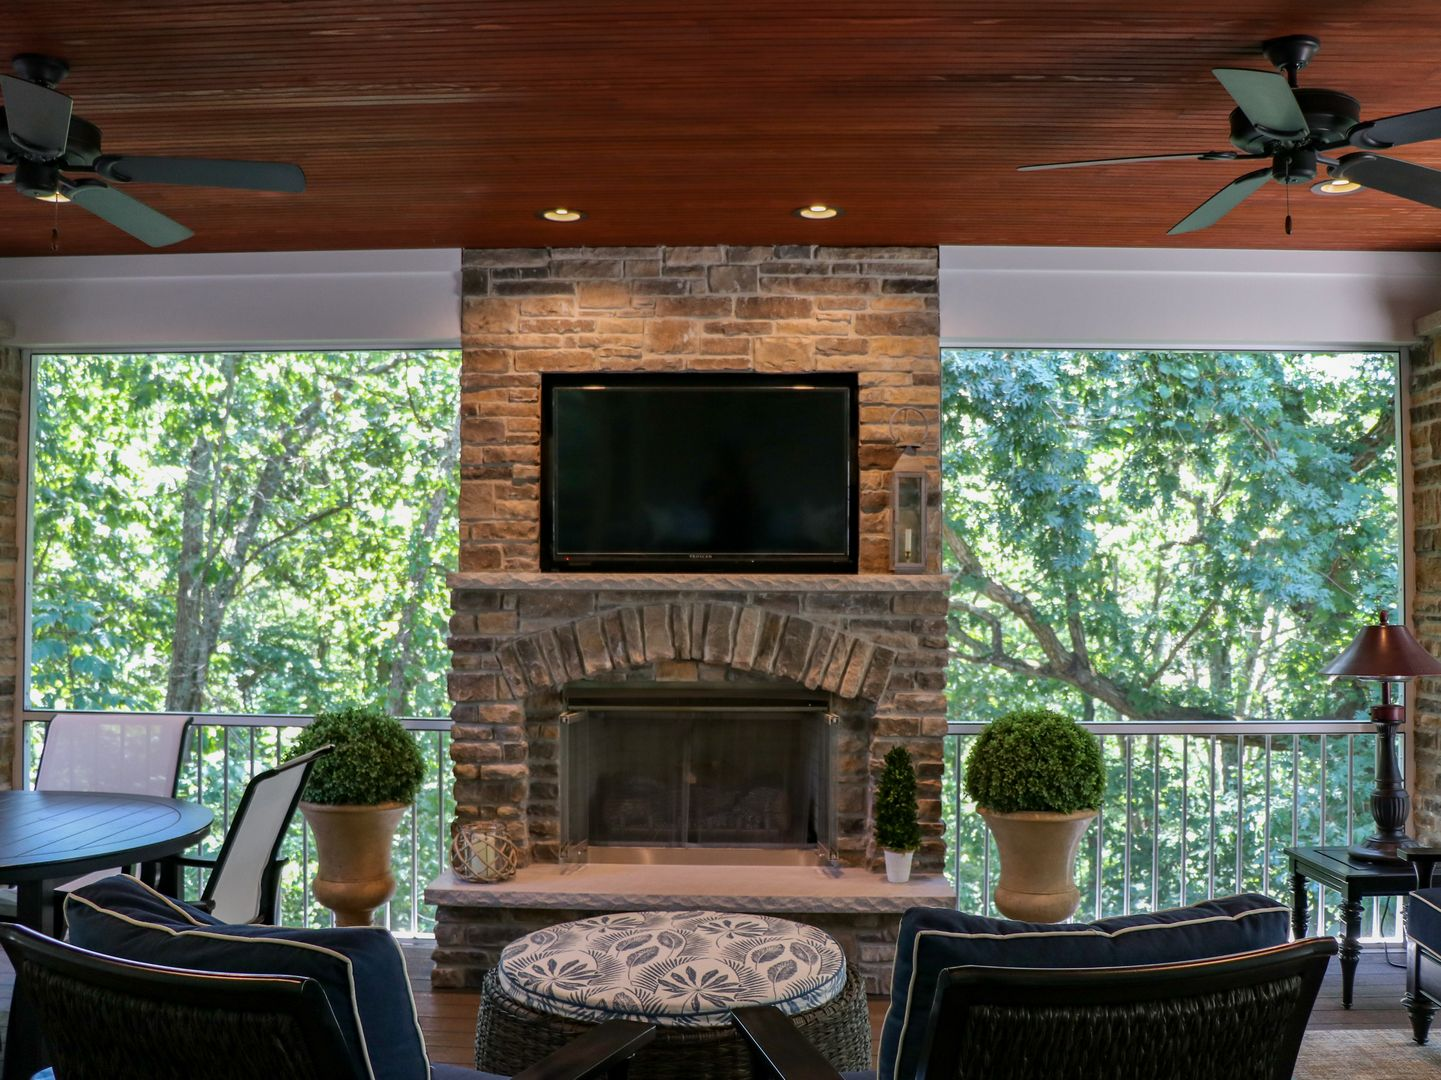 enjoy the best outdoor living space with a TV